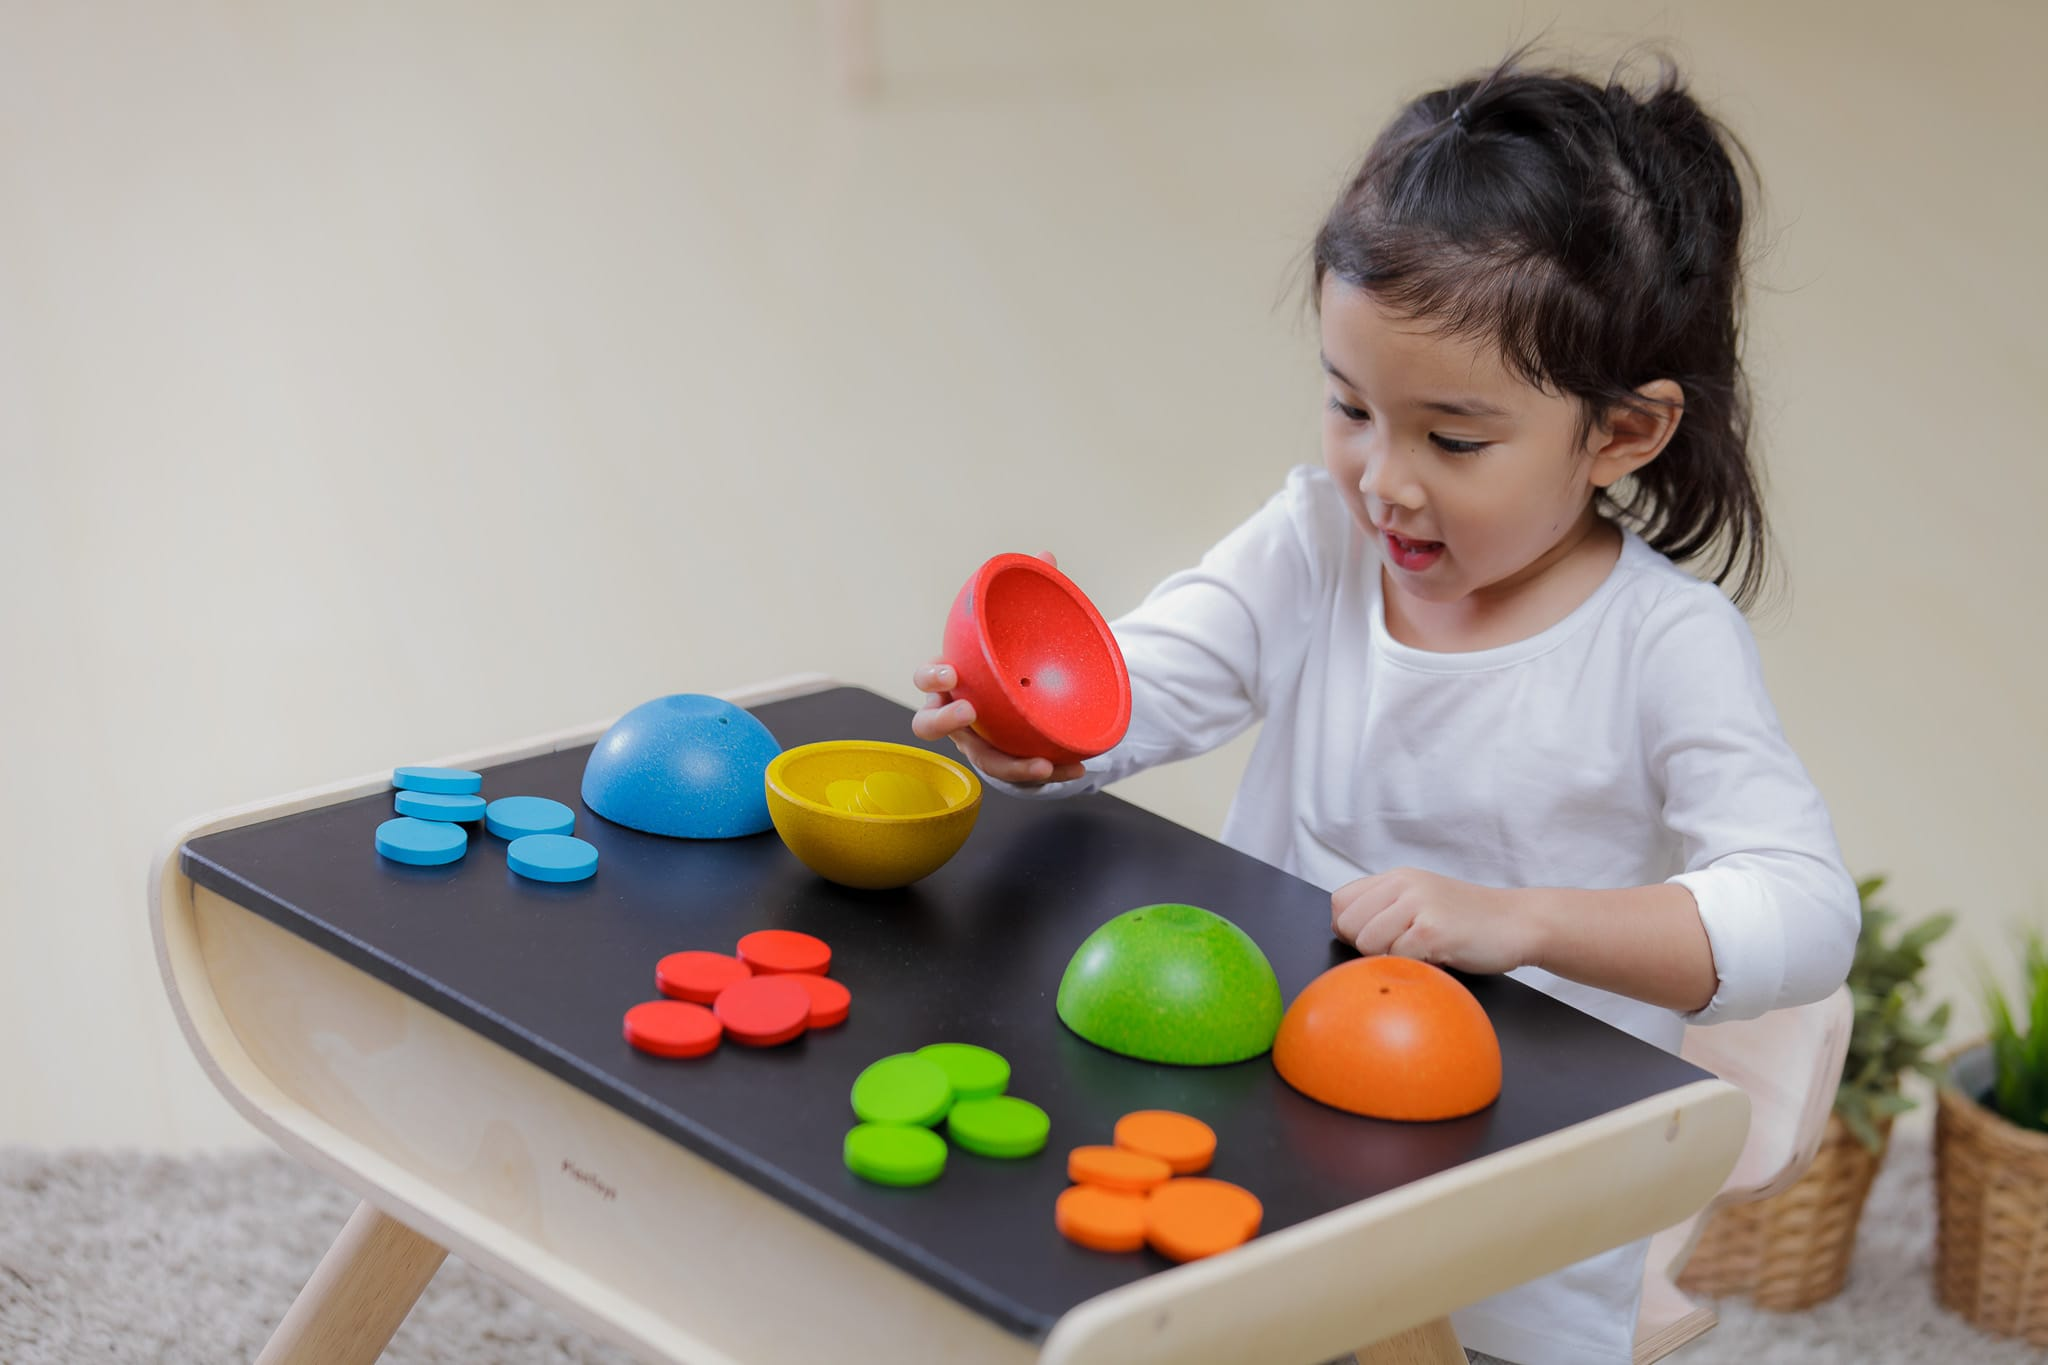 5360_PlanToys_SORT_and_COUNT_CUPS_Learning_and_Education_Mathematical_Fine_Motor_Coordination_18m_Wooden_toys_Education_toys_Safety_Toys_Non-toxic_4.jpg